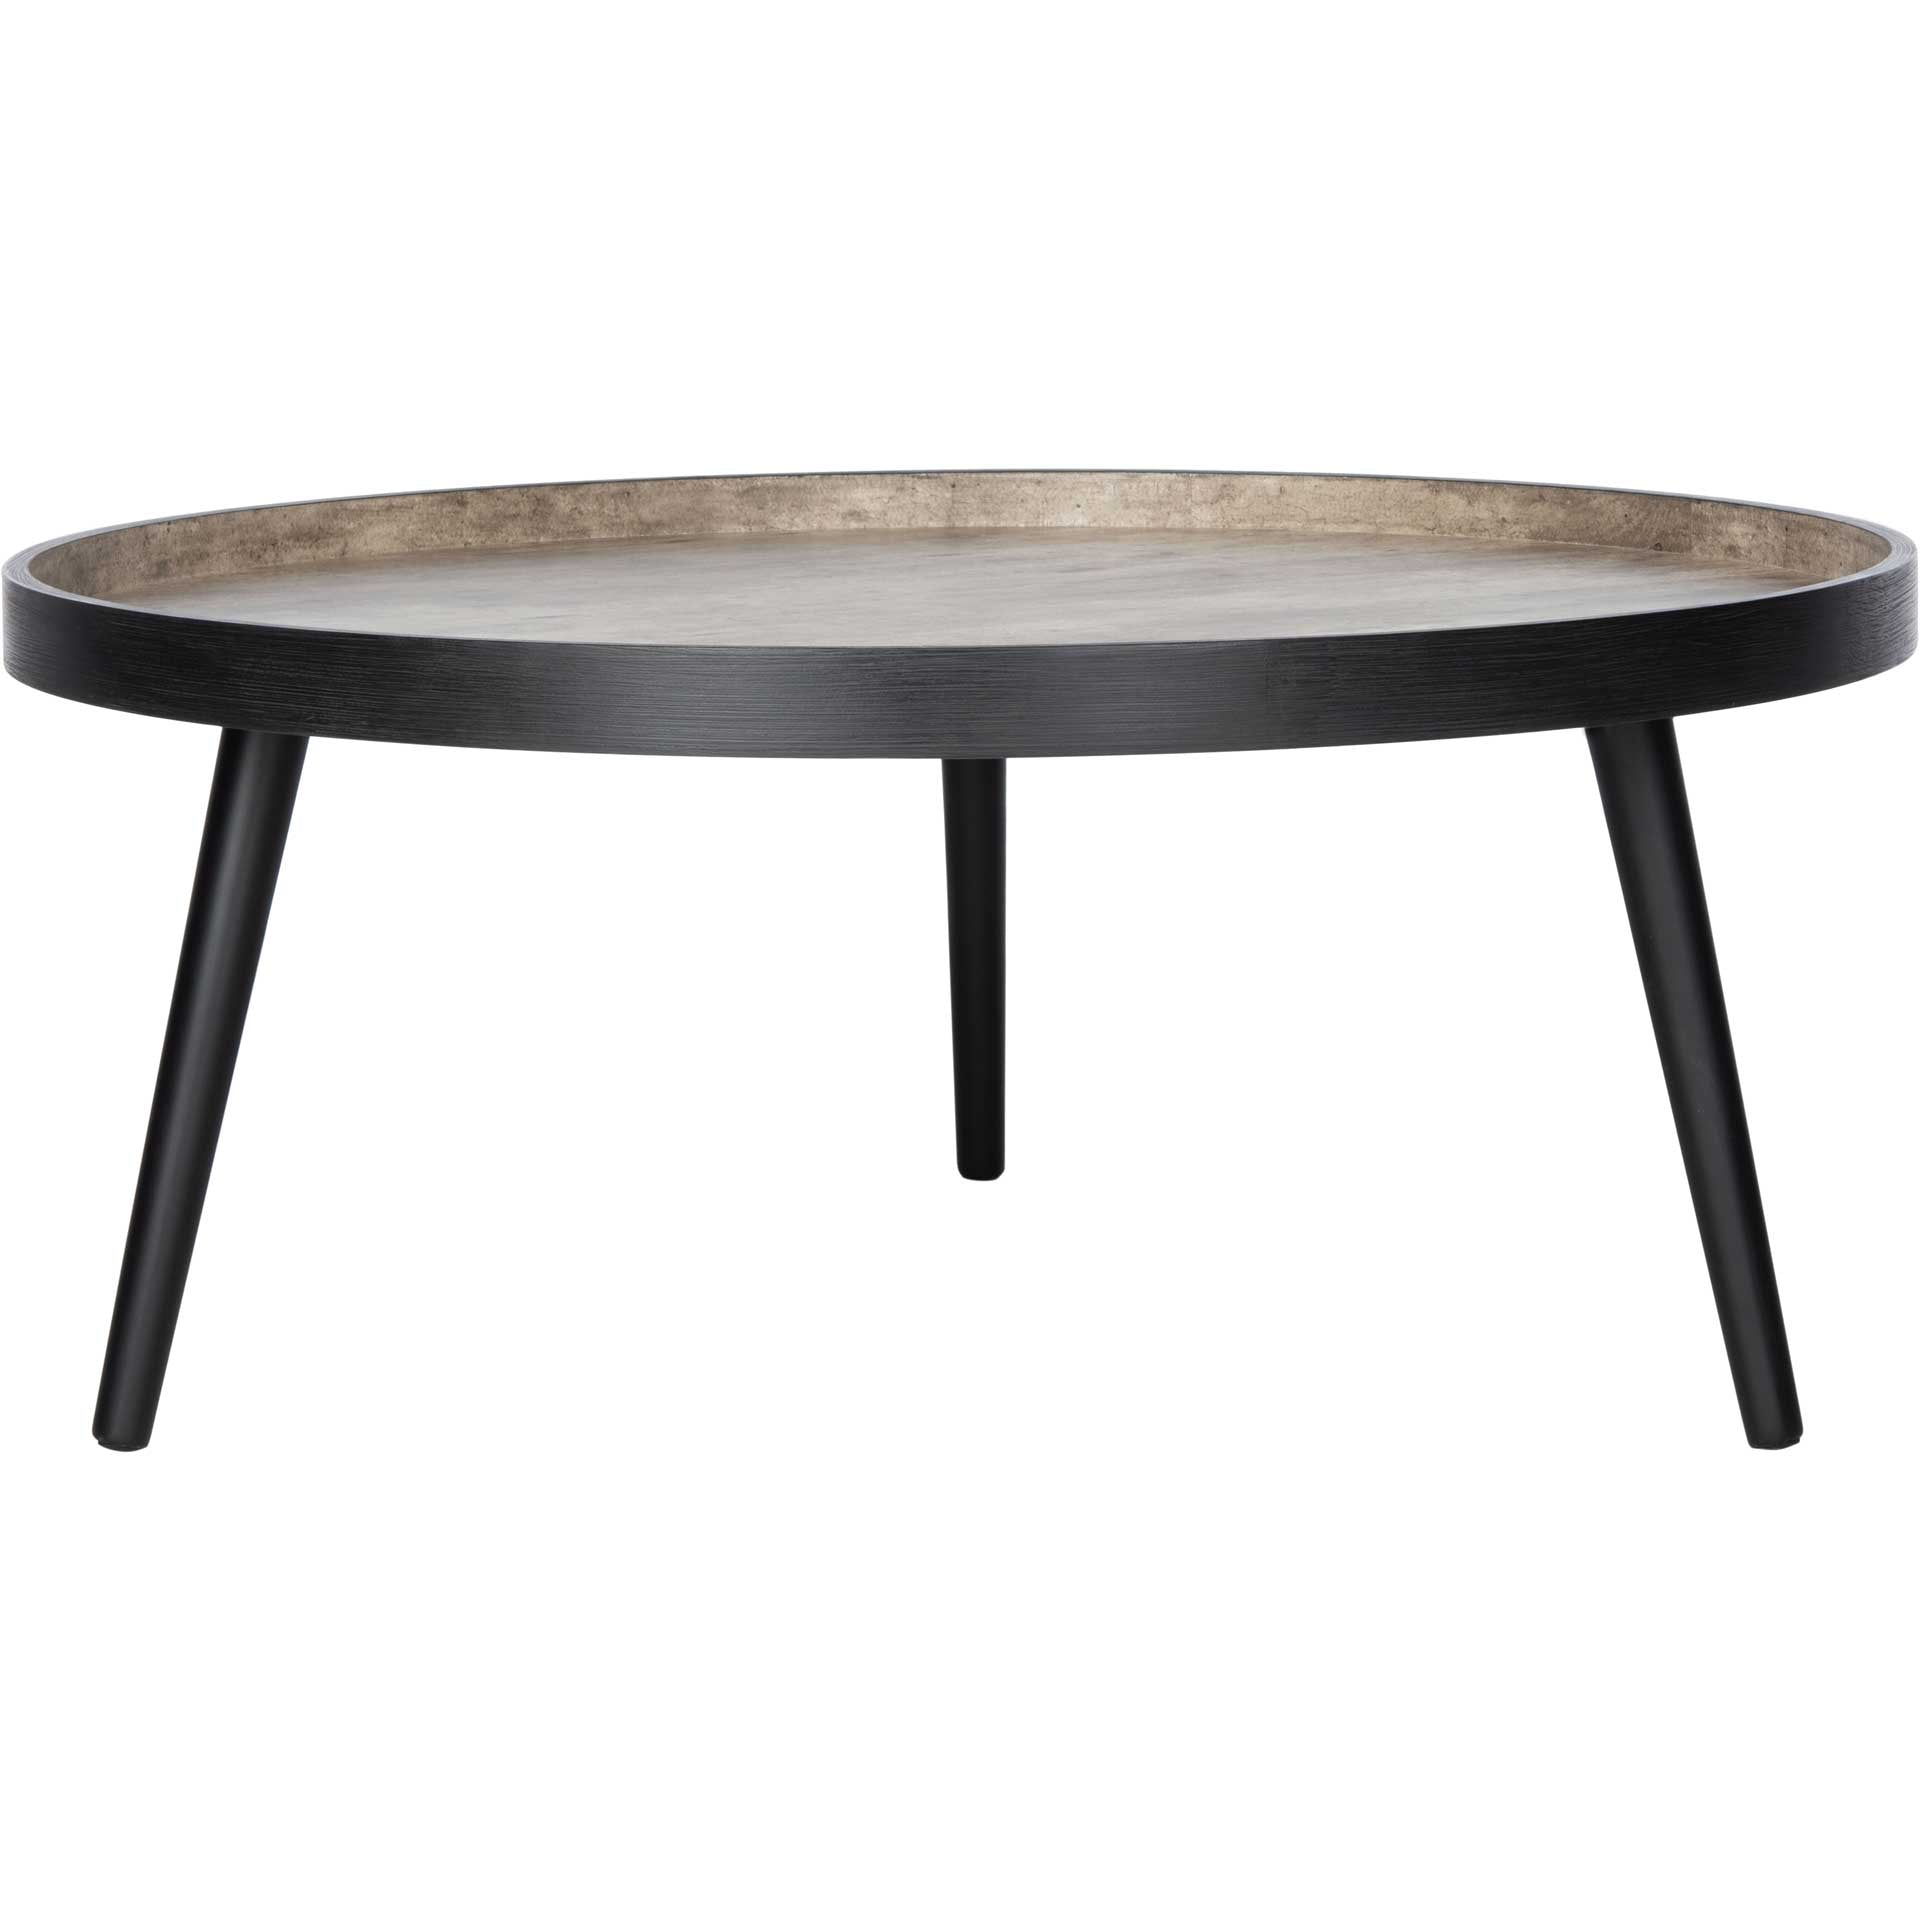 Freya Round Tray Top Coffee Table Light Gray/Black